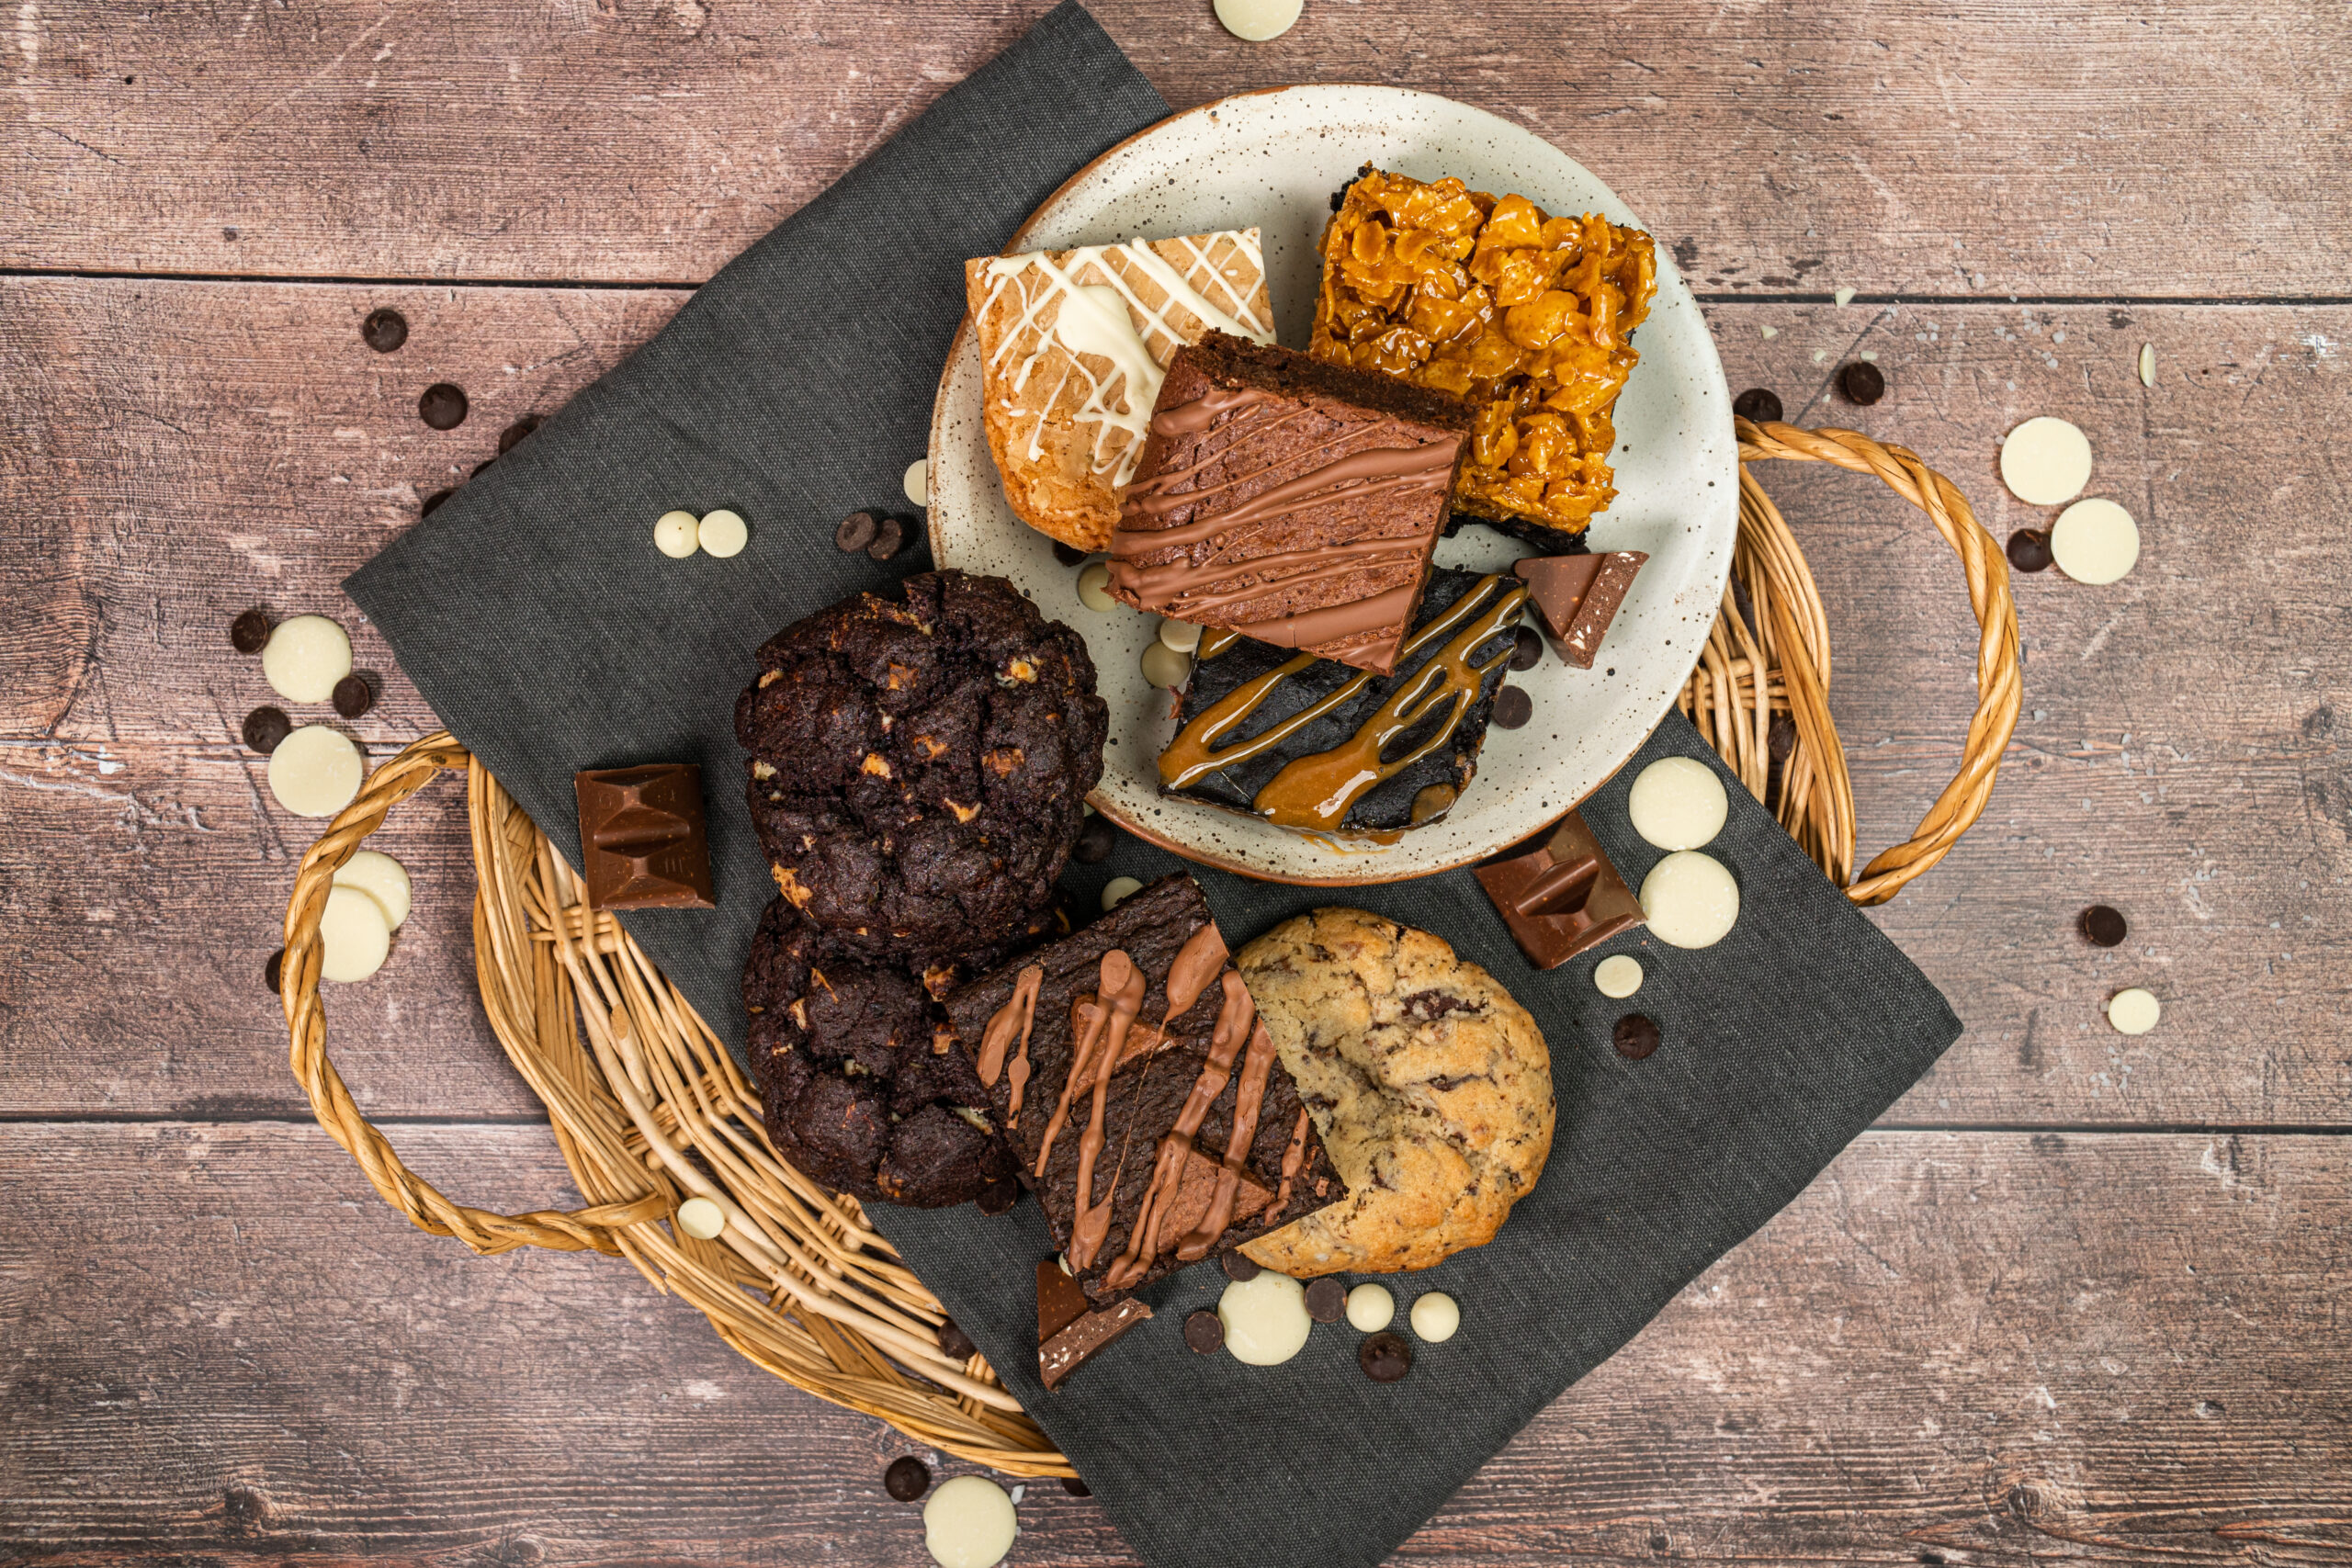 collections of treats in a basket, including various cookies and brownies